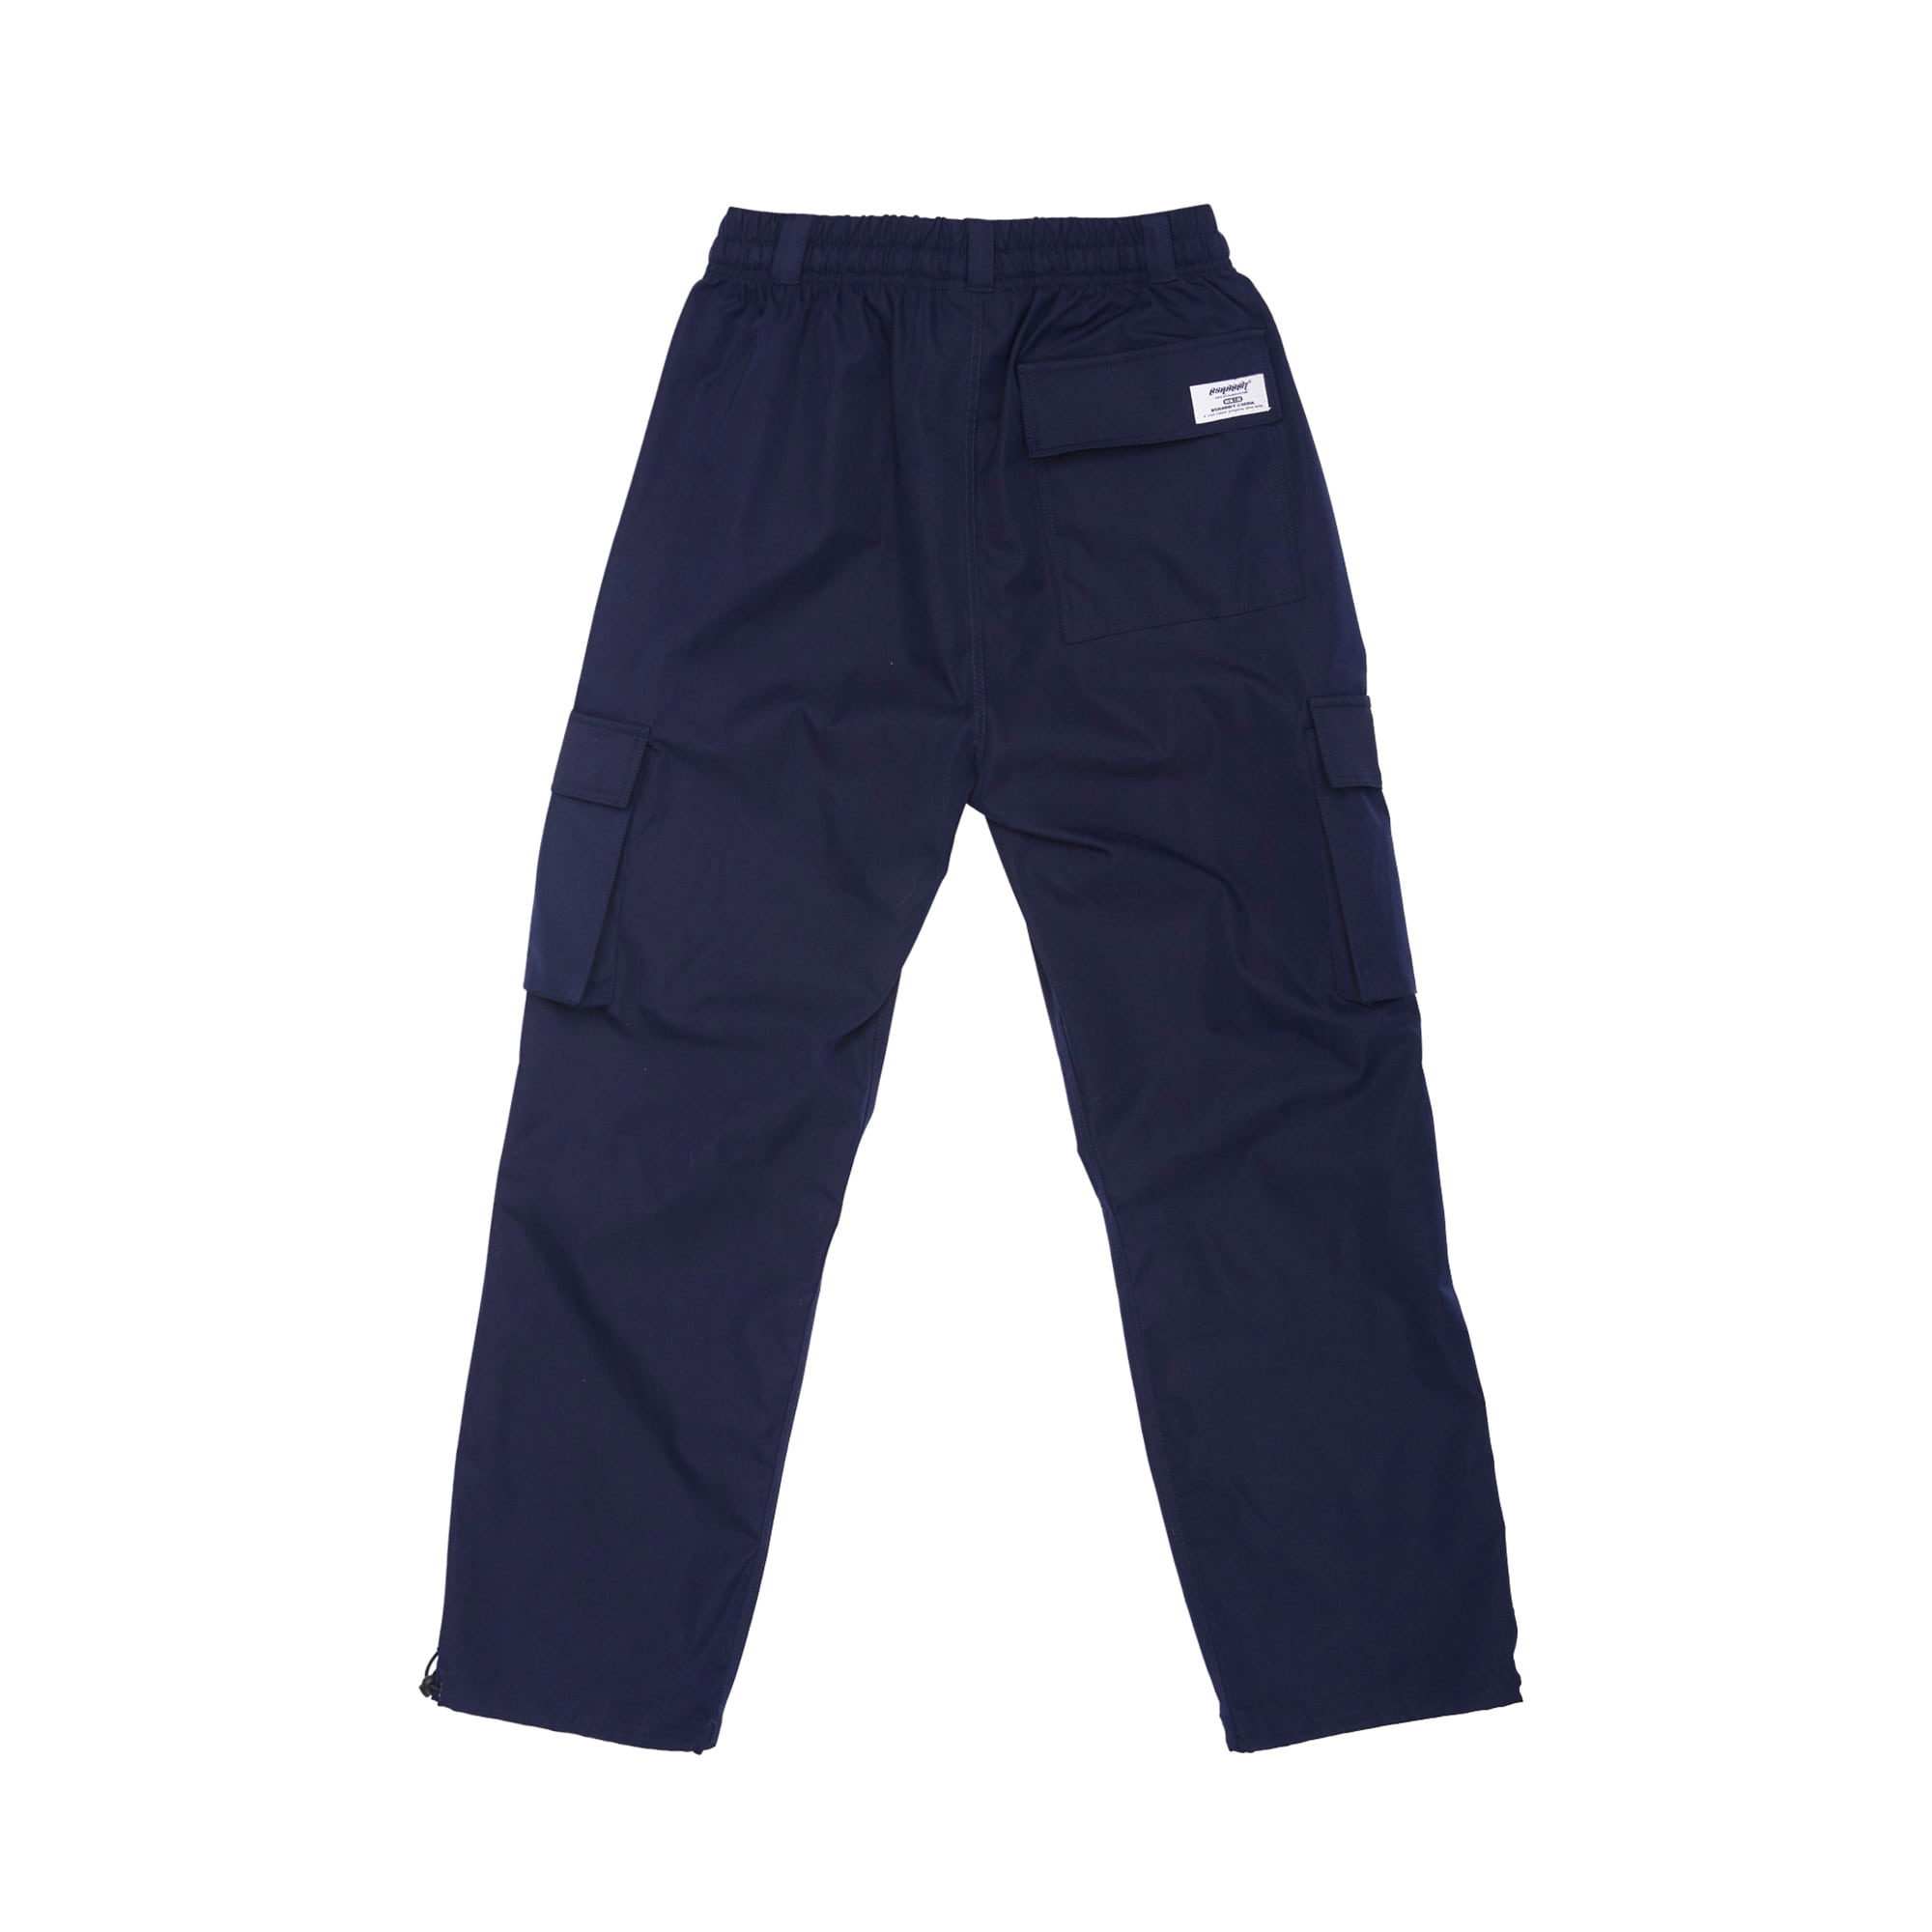 BSRABBIT BSRBT STRETCH TWILL CARGO TRACK PANTS NAVY